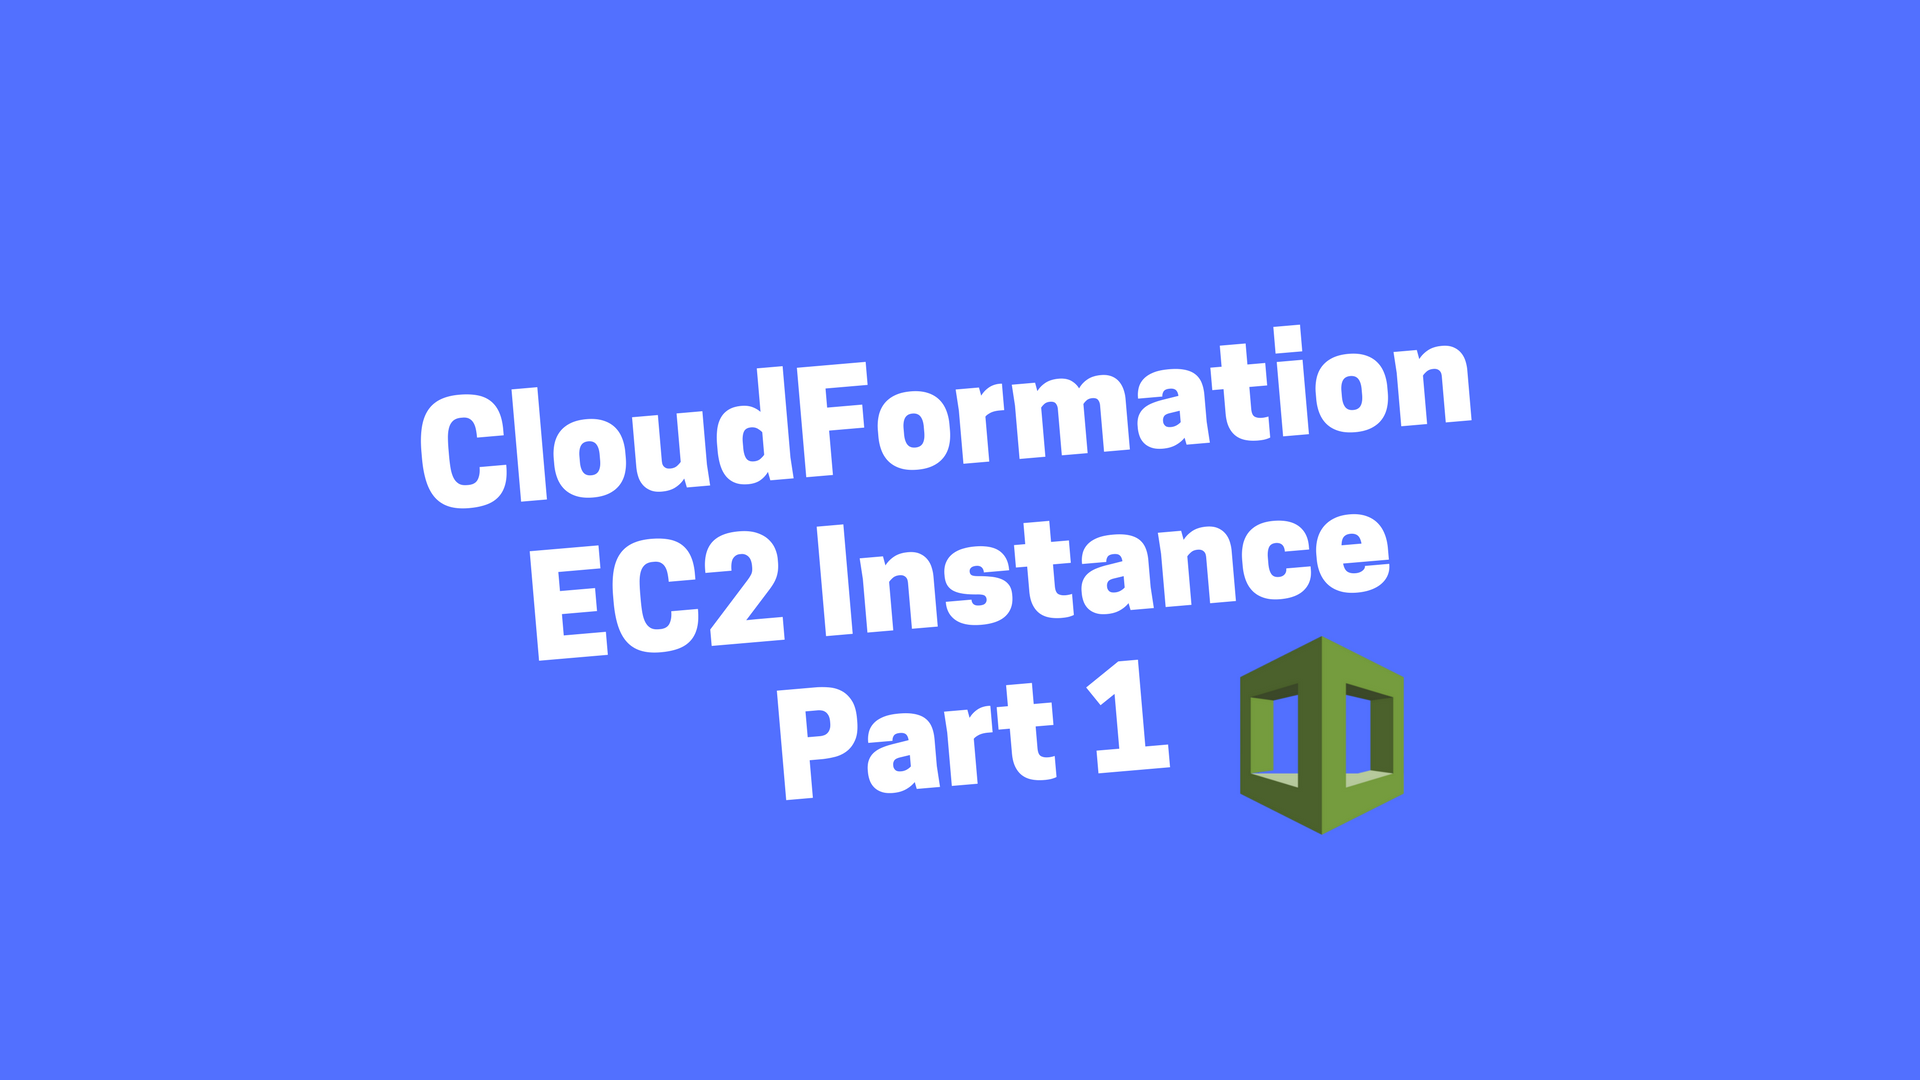 A Simple Introduction to AWS CloudFormation Part 1: EC2 Instance